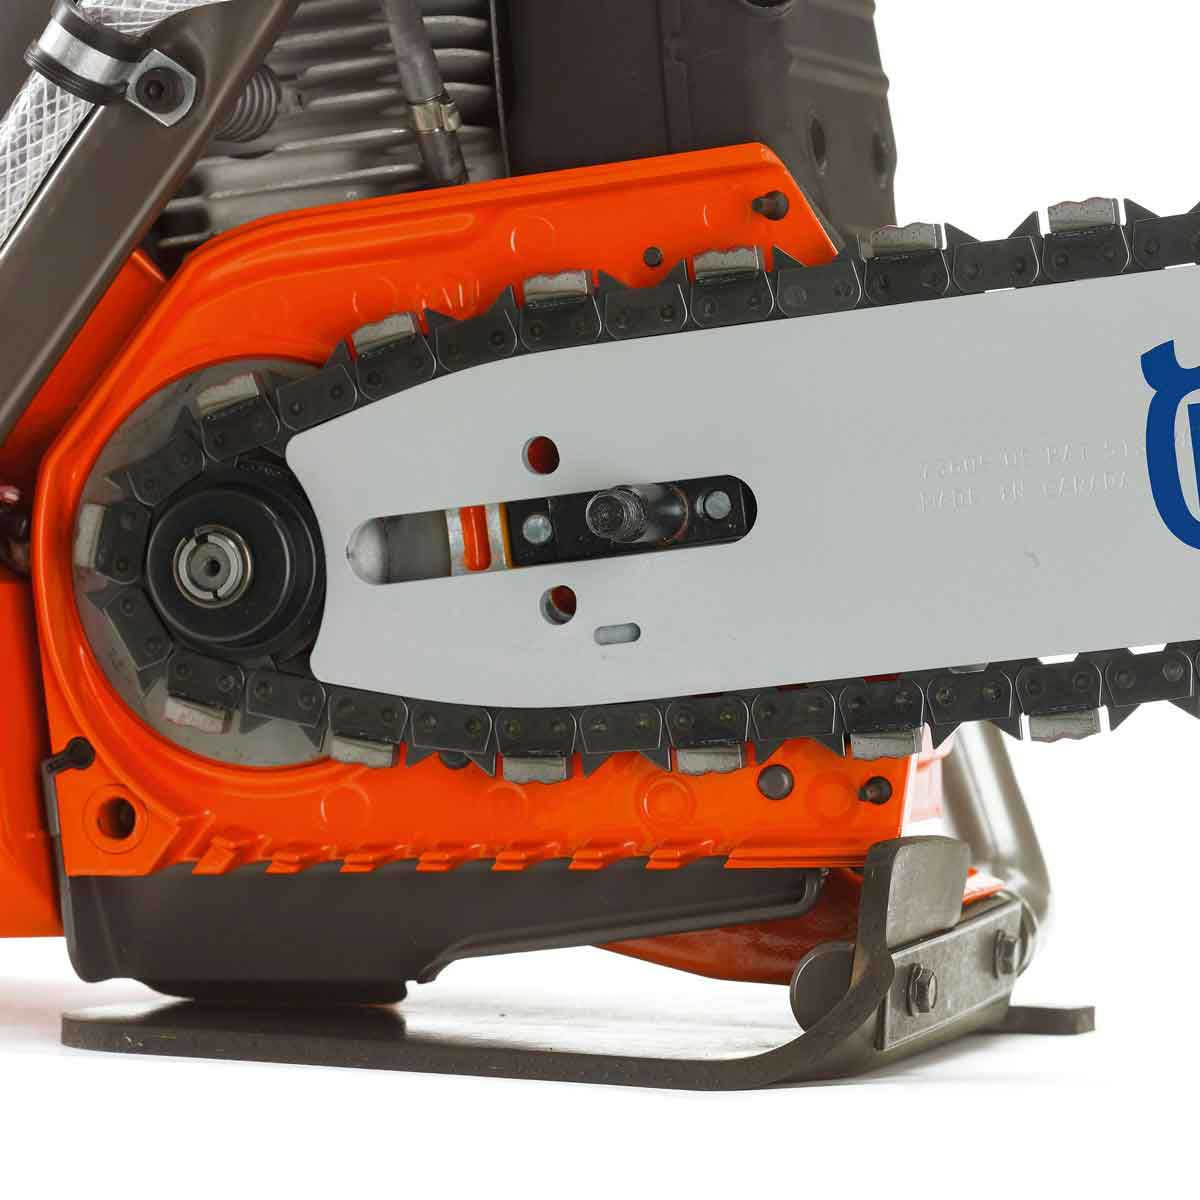 husqvarna concrete chainsaw, concrete chainsaw, husqvarna k970 saw